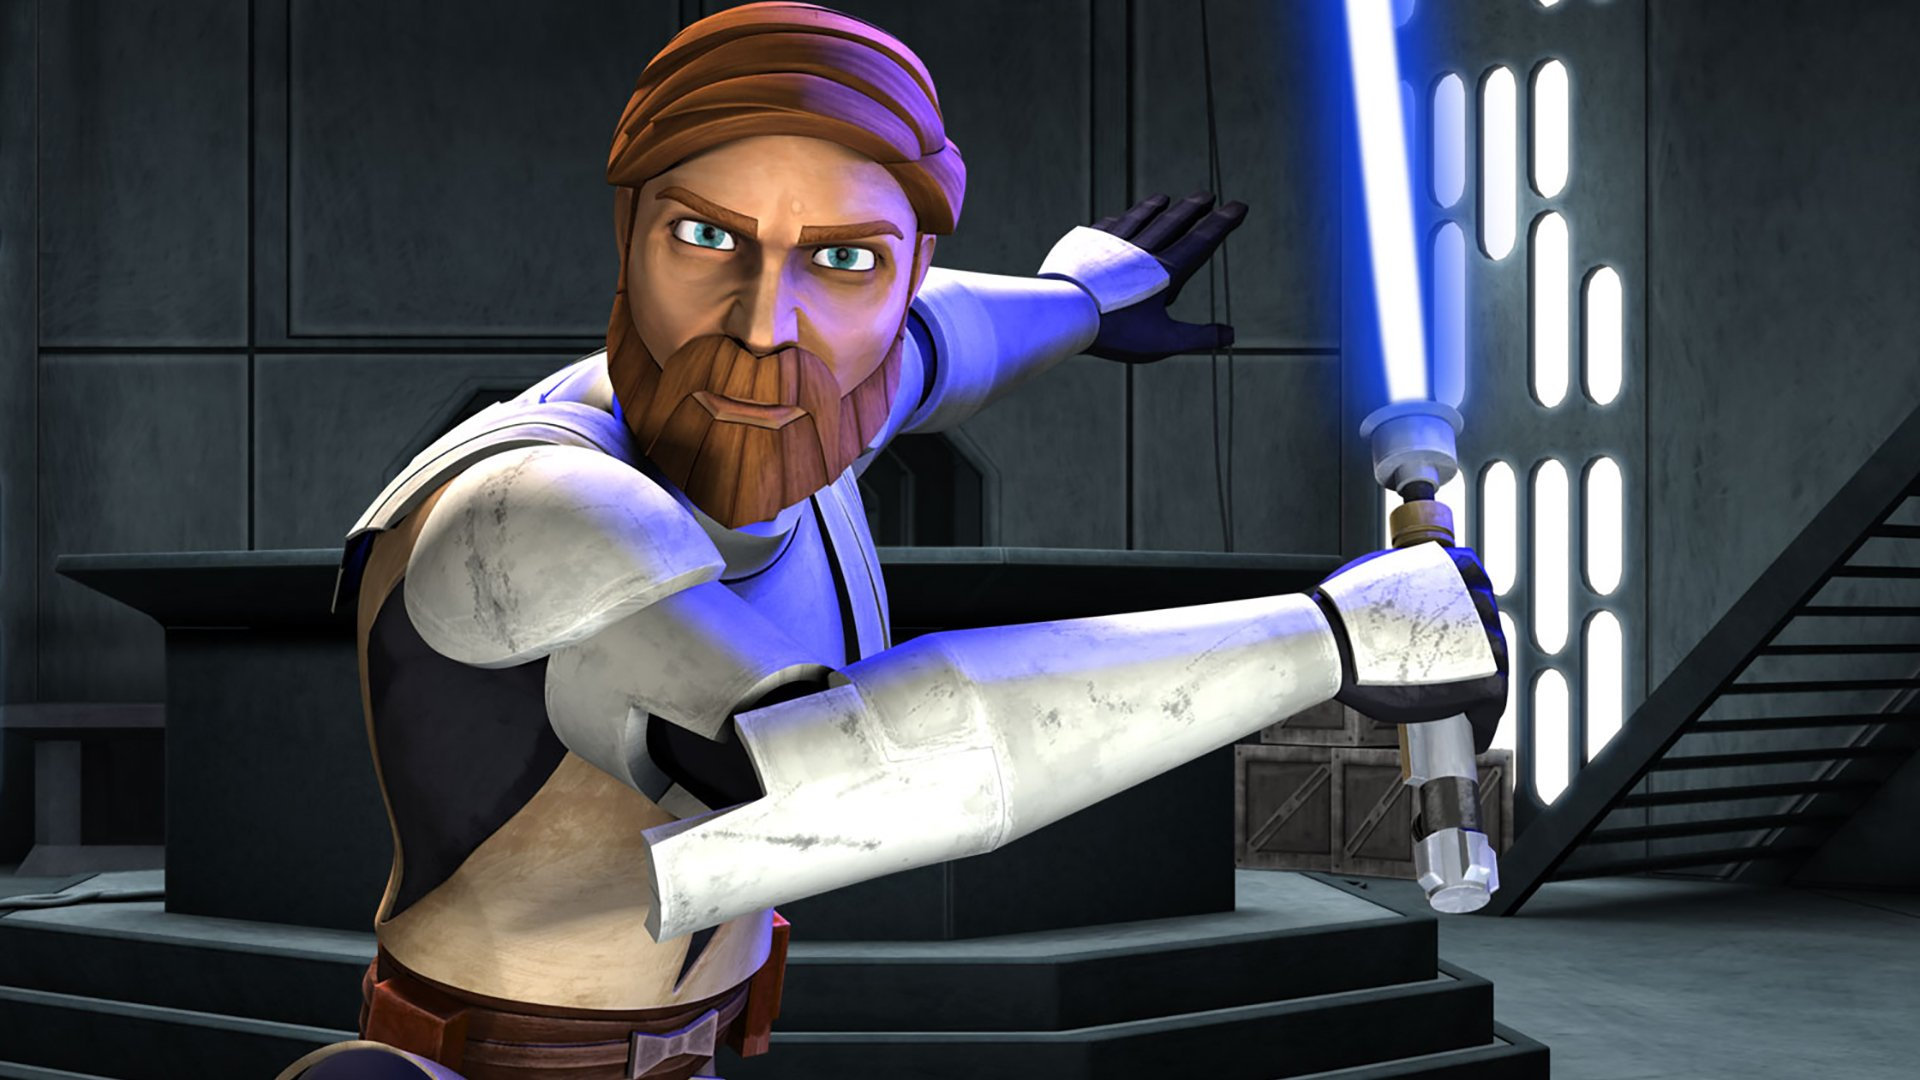 Movie - Star Wars: The Clone Wars  Obi-Wan Kenobi Wallpaper